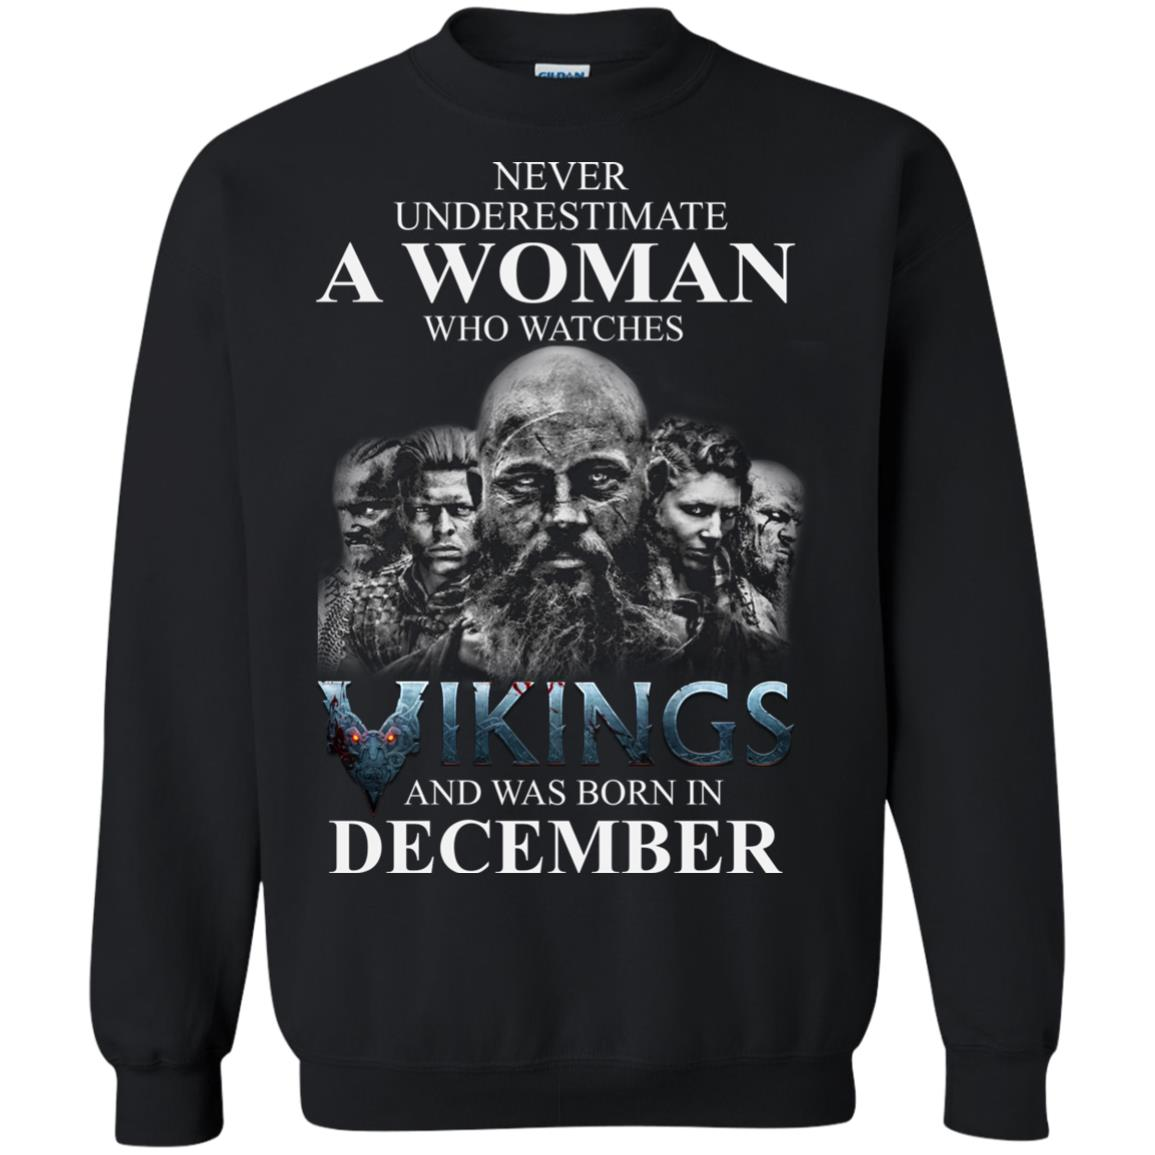 image 1225 - Never Underestimate A woman who watches Vikings and was born in December shirt